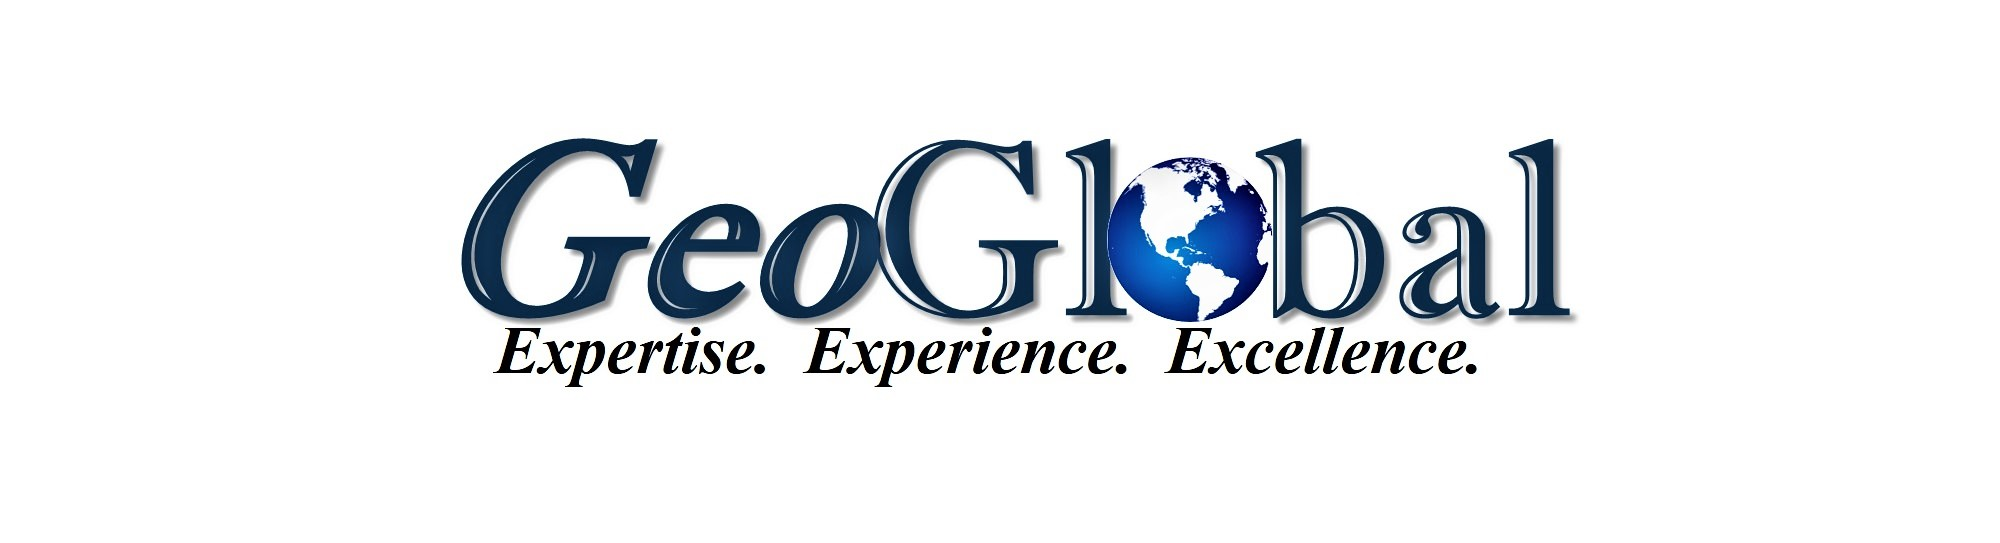 GeoGlobal%20Logo%20v1%2019%20Jan%202017.jpg